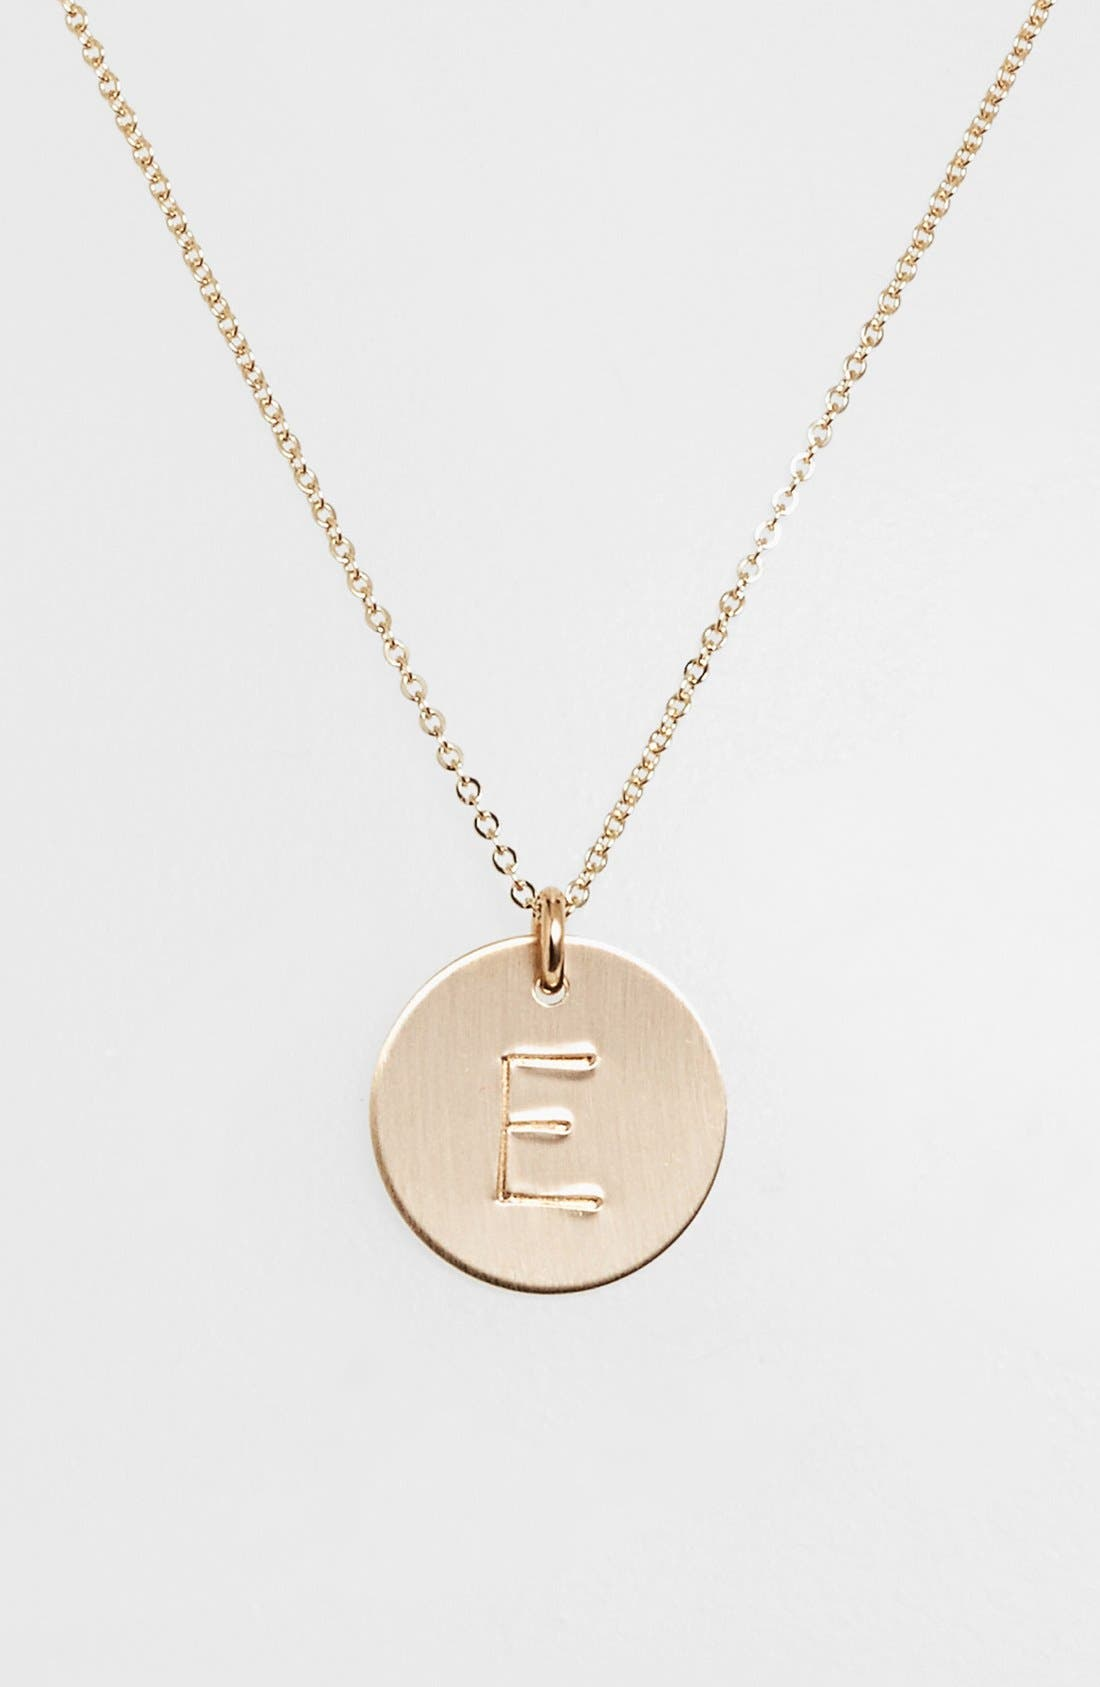 14k-Gold Fill Initial Disc Necklace,                         Main,                         color, 14K GOLD FILL E